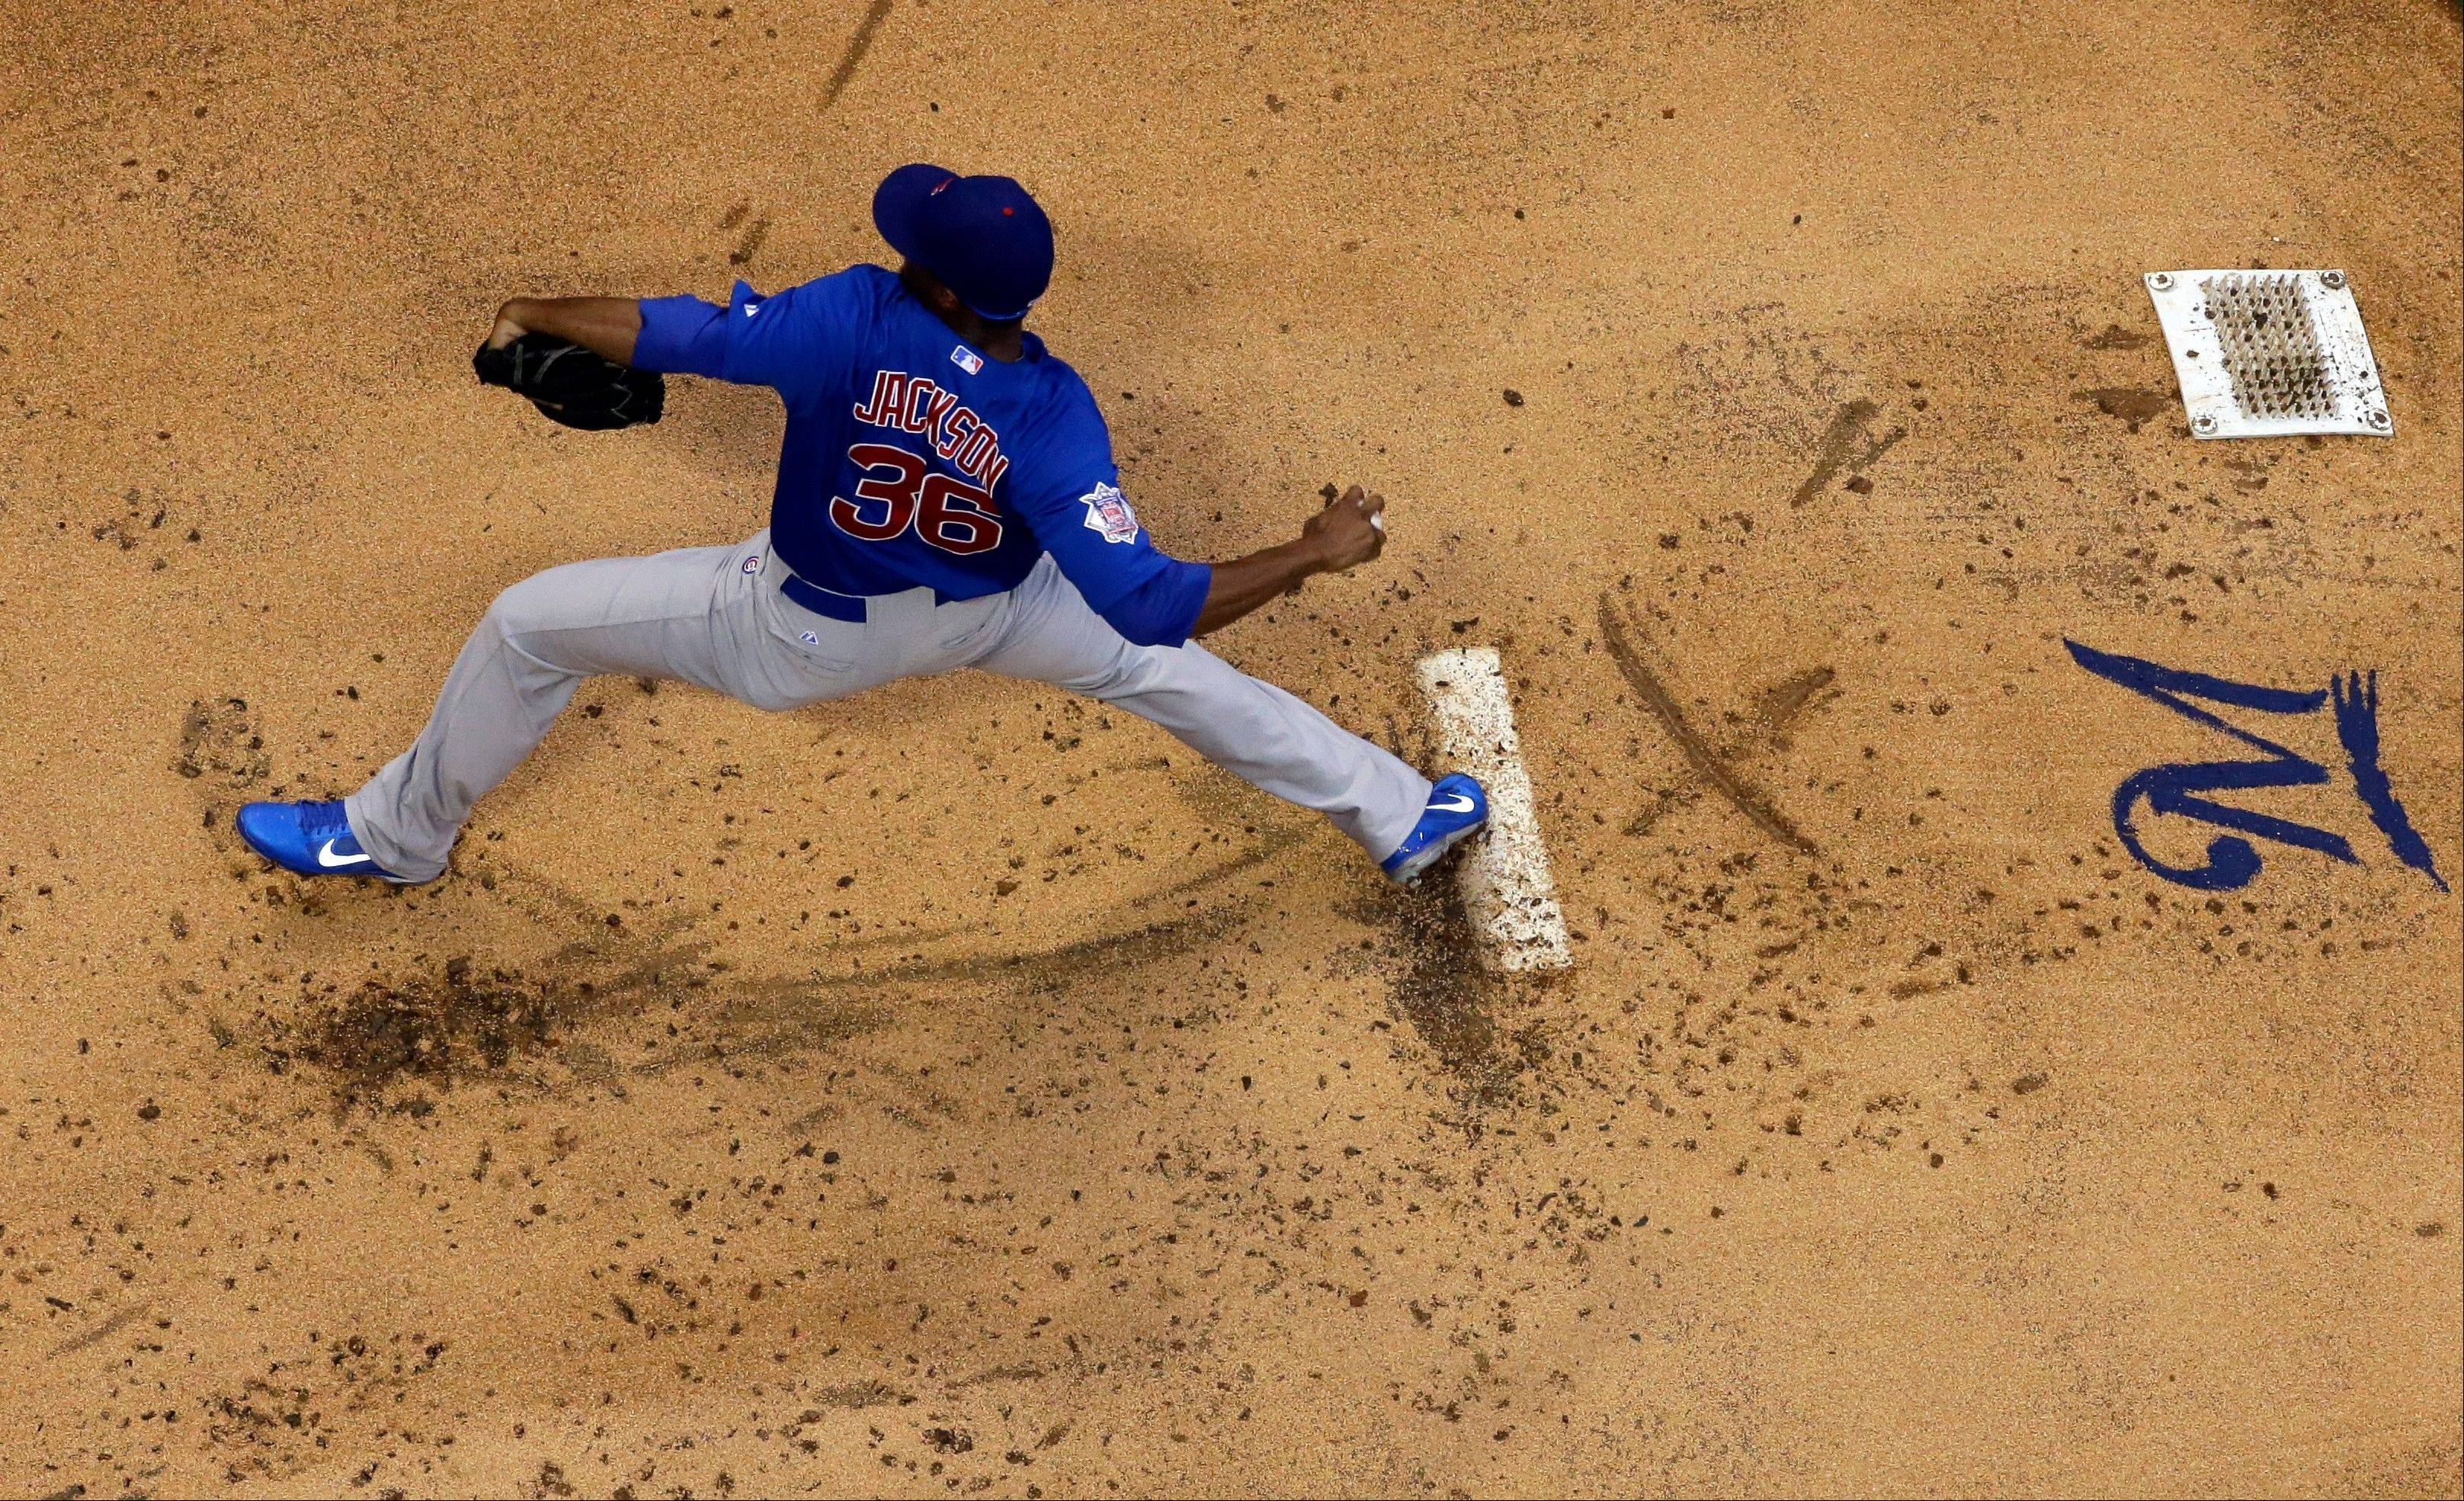 Chicago Cubs starting pitcher Edwin Jackson throws during the first inning of a baseball game against the Milwaukee Brewers Tuesday, June 25, 2013, in Milwaukee. (AP Photo/Morry Gash)